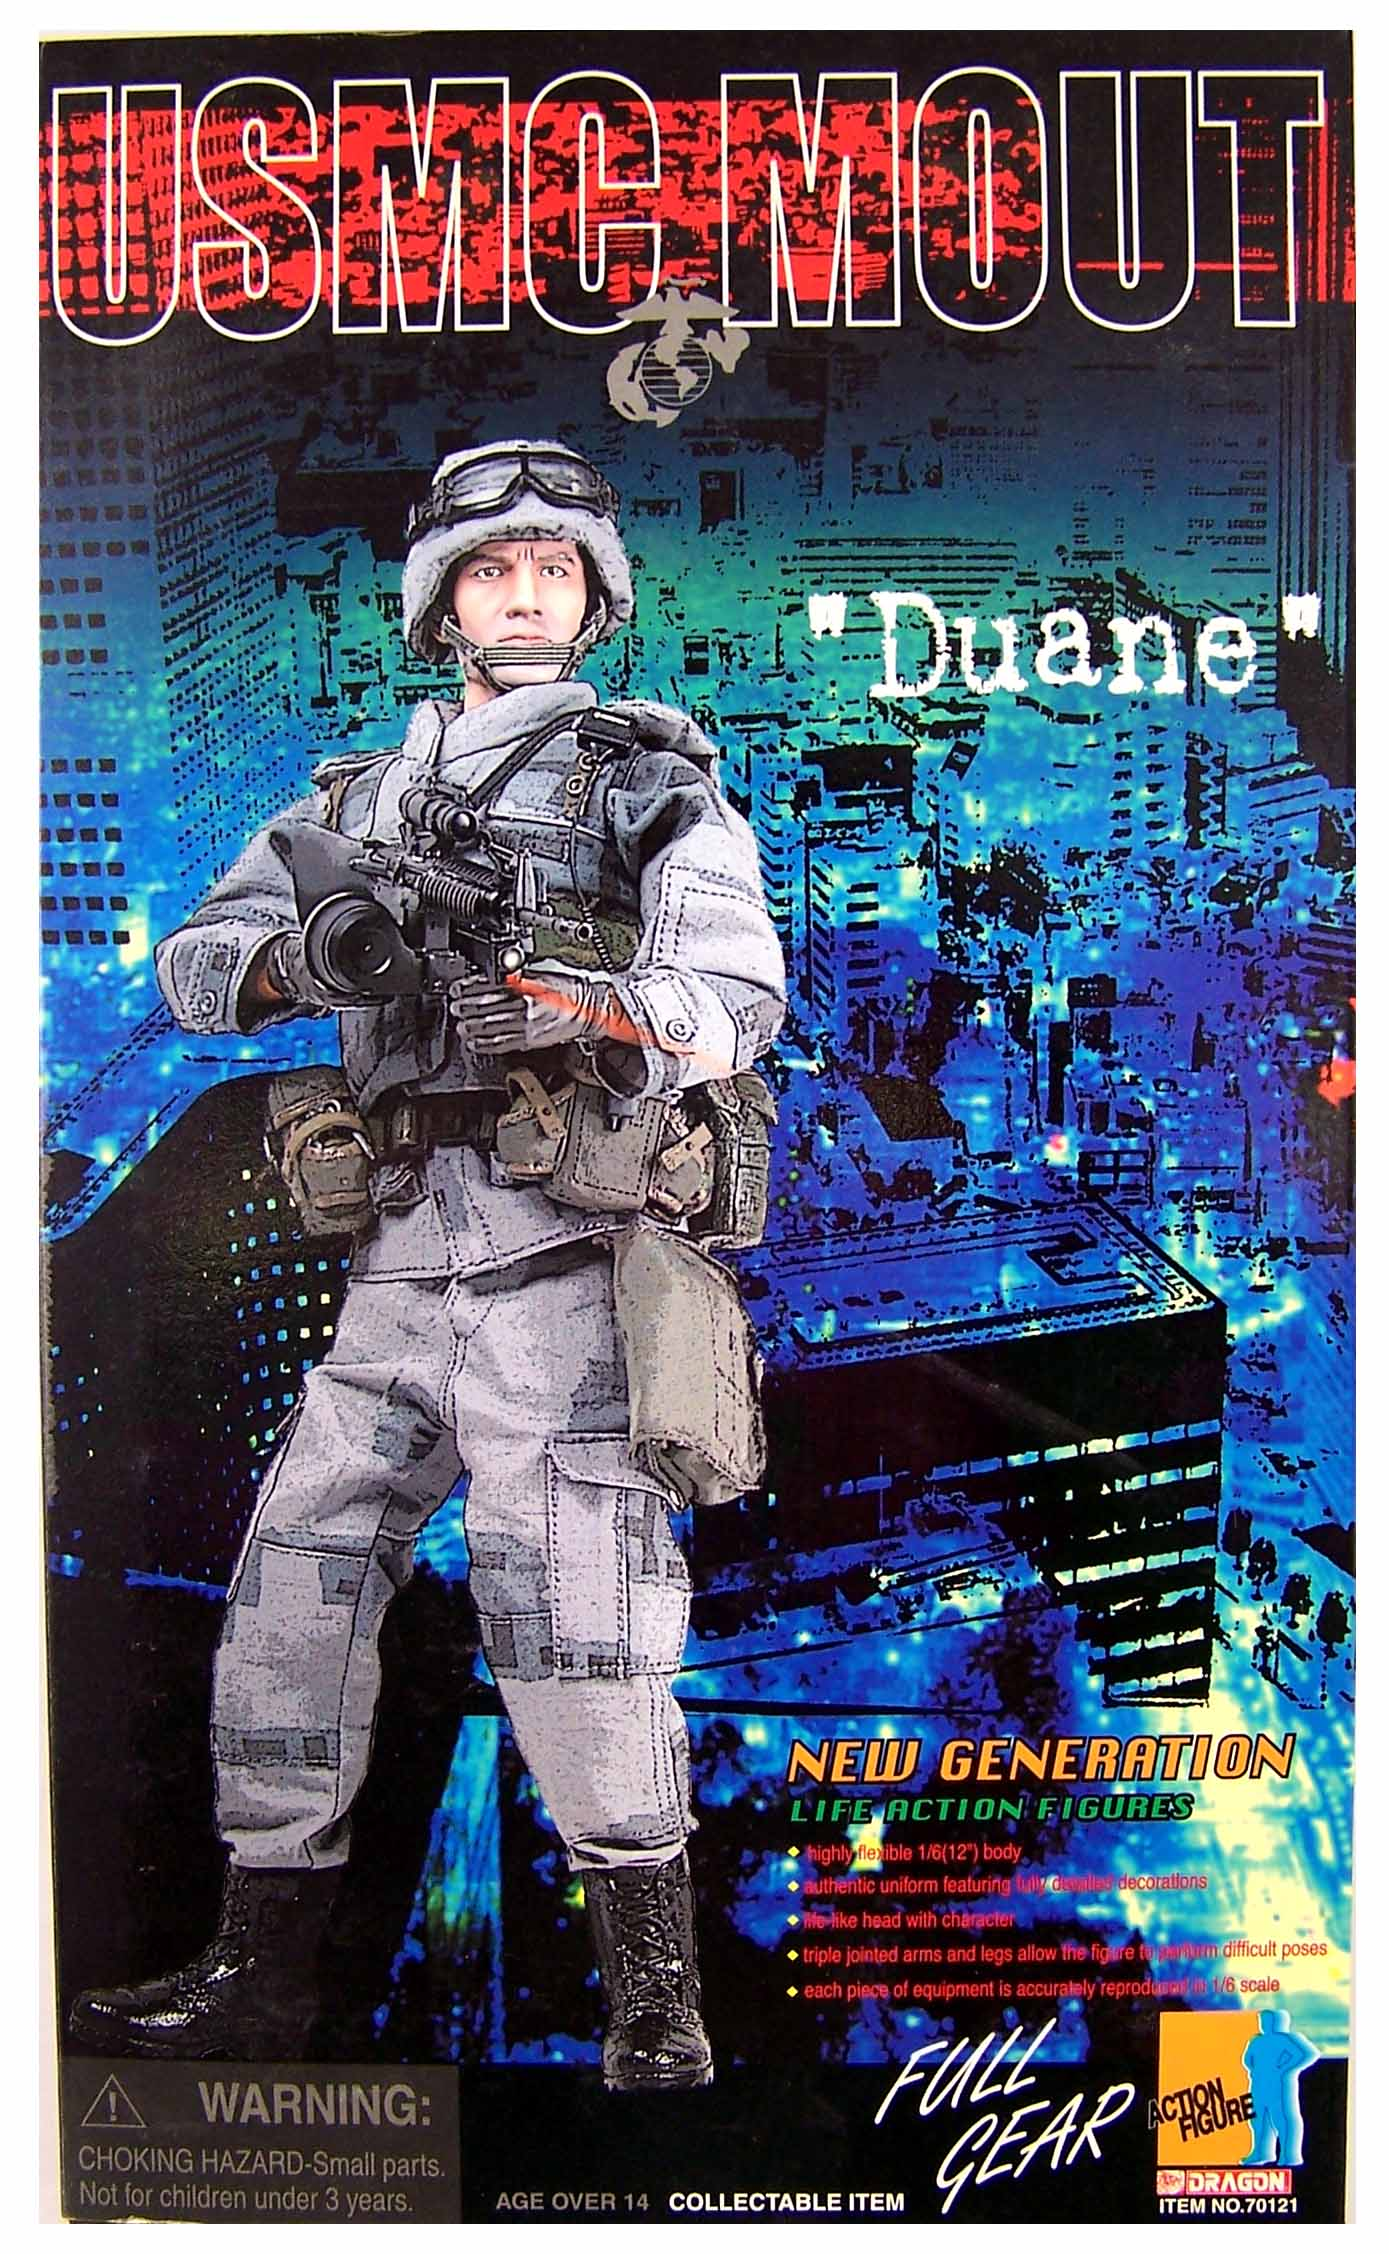 Technology Management Image: 1/6 Scale US Modern Military Figure